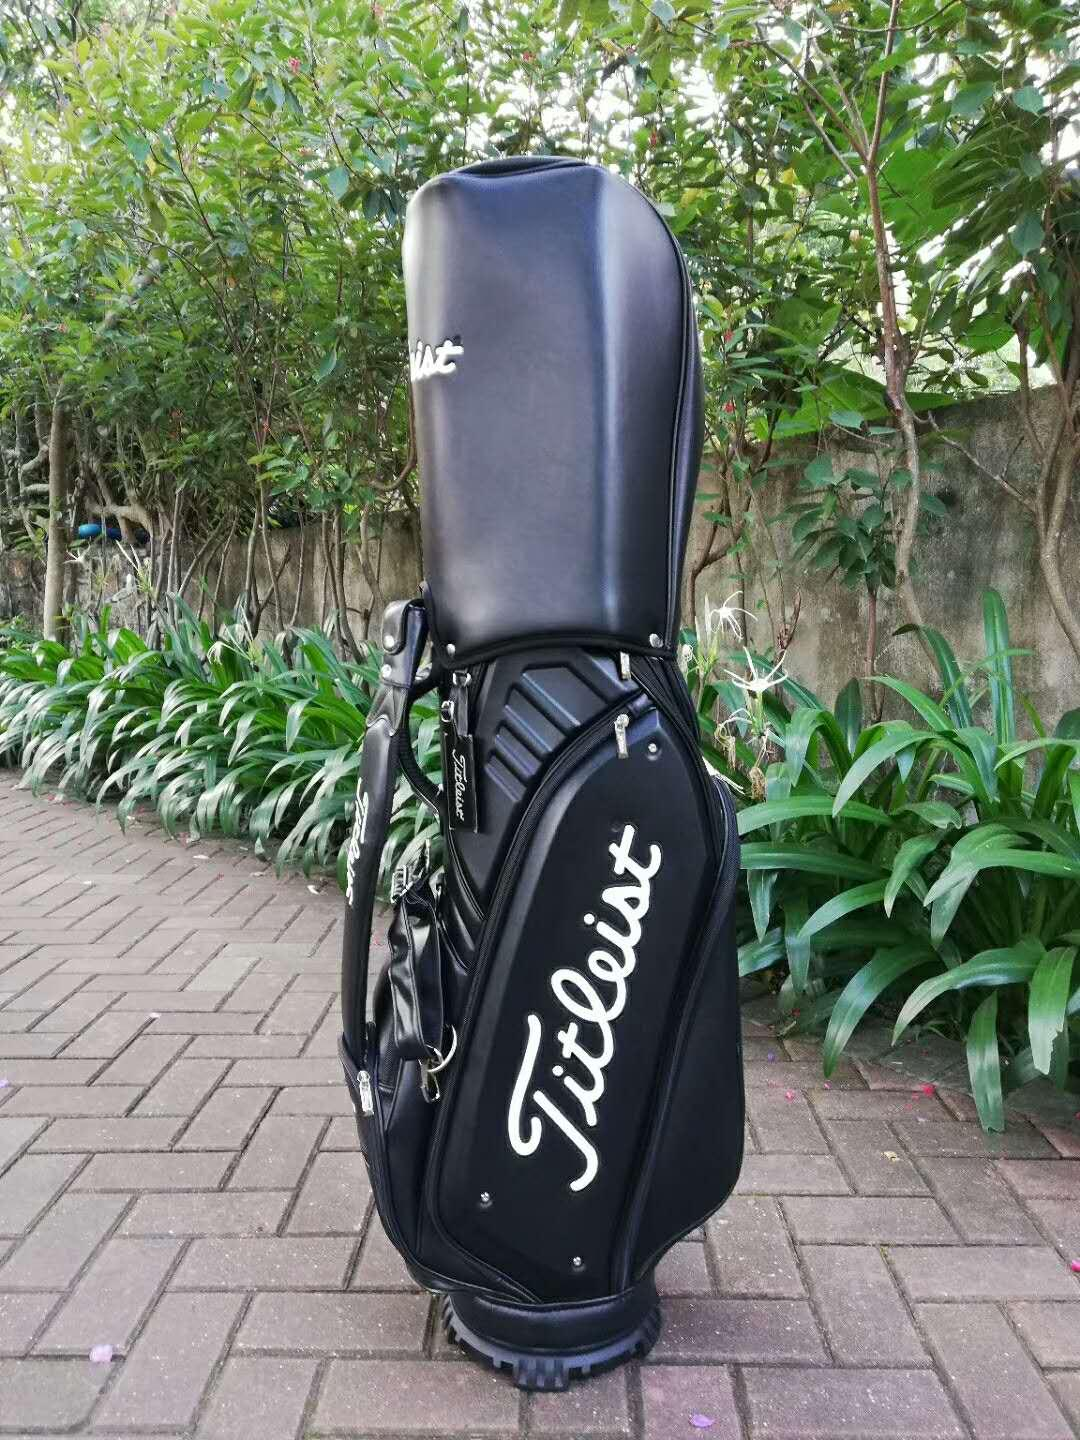 Titleist caddy bag caddy bag CB842 9.5 inch Men's CB842 black